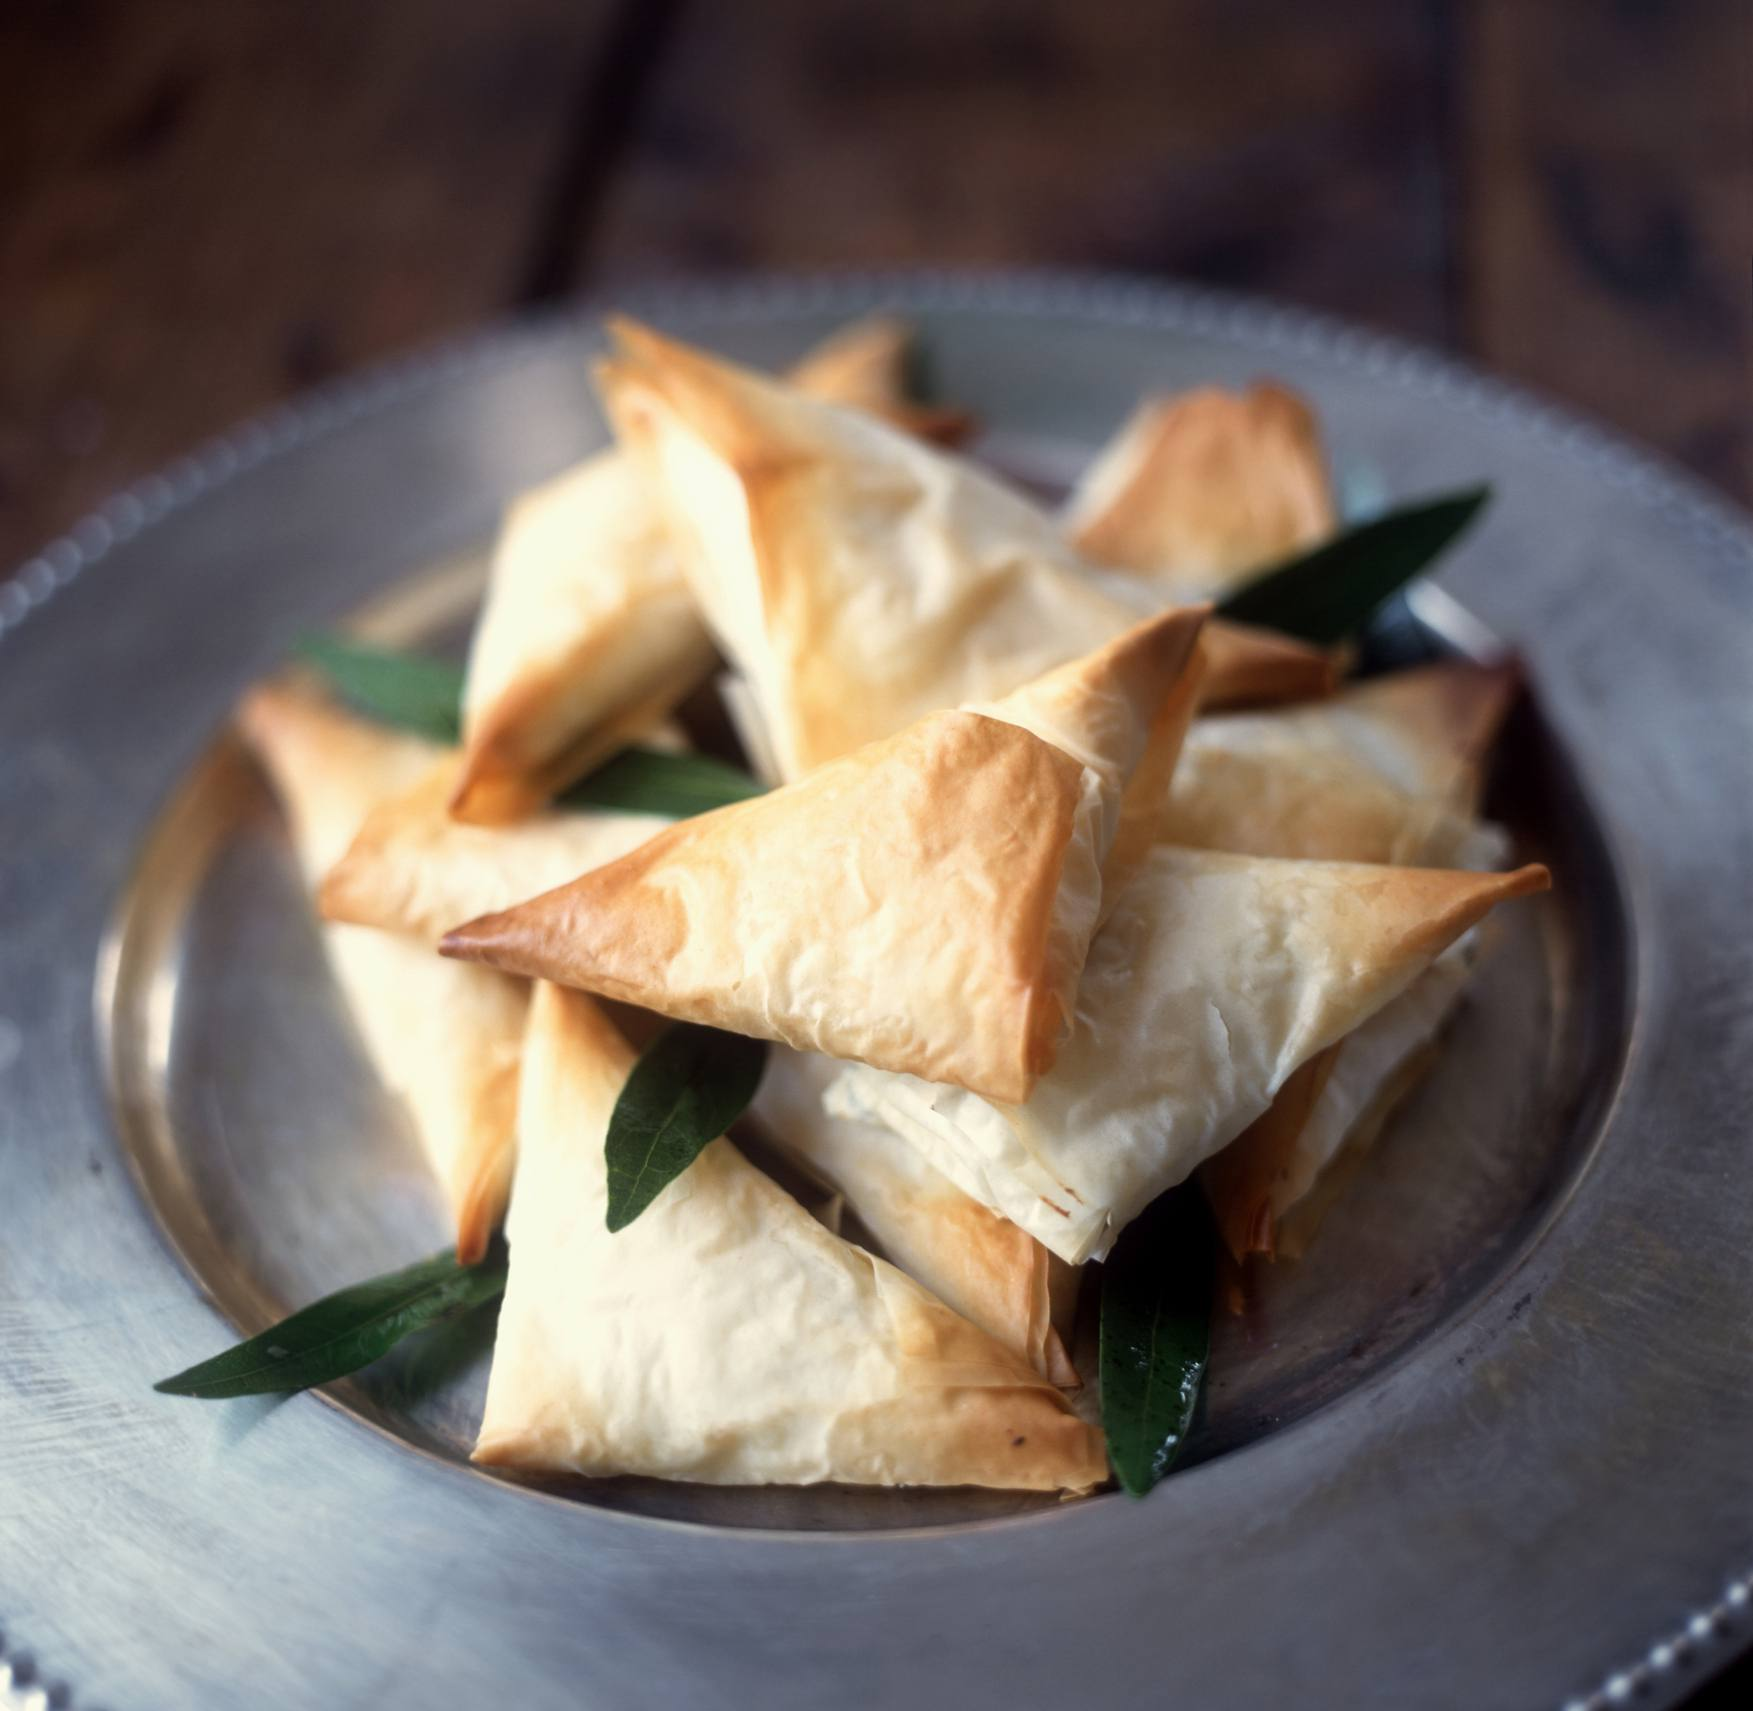 Phyllo dough turnovers